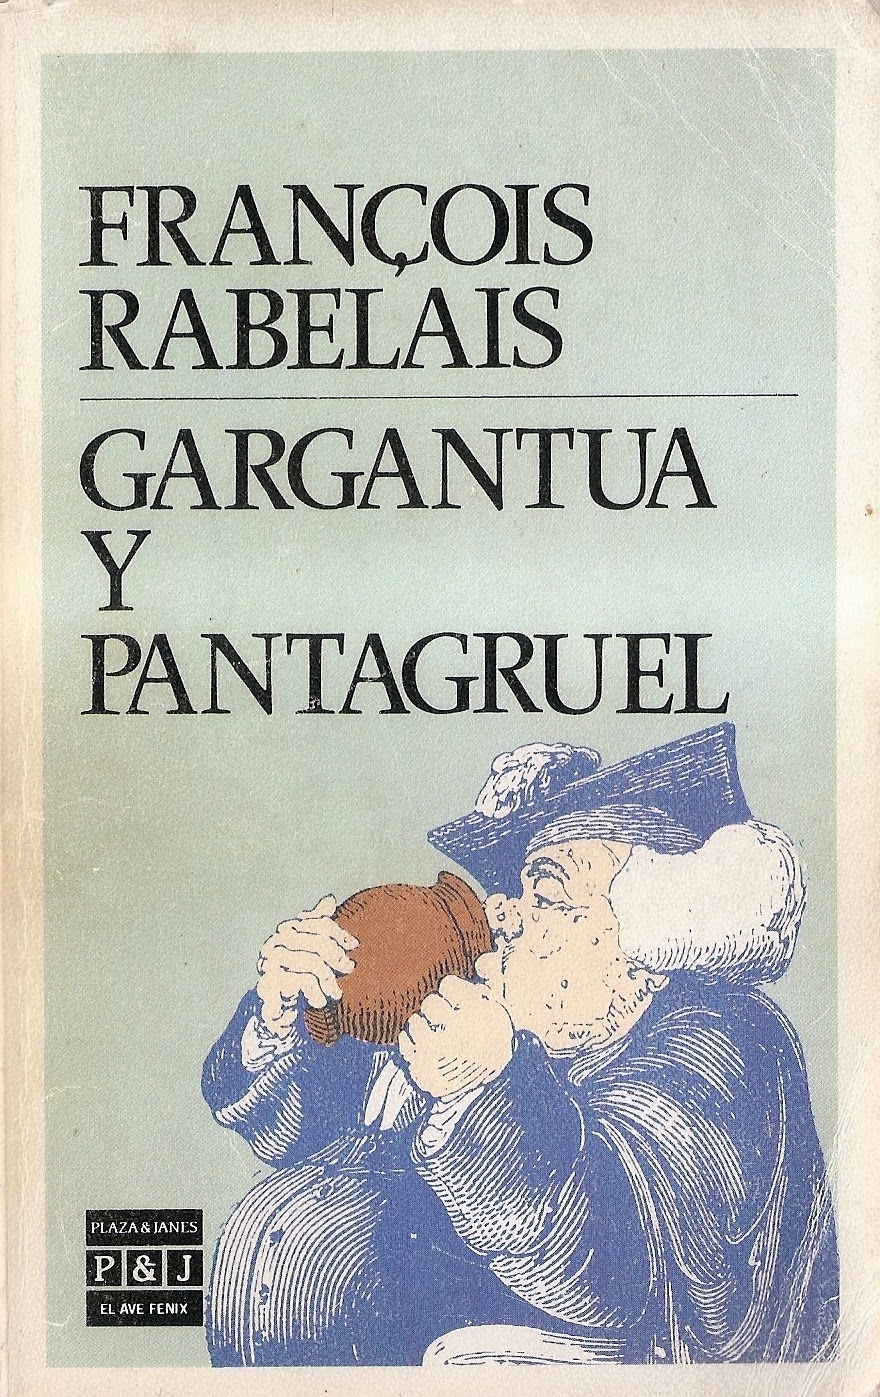 an analysis of gargantua and pantagruel by francois rabelais Bakhtin does not even analyze in any detail the only place in rabelais's work   rabelais's first invention told the story of gargantua's son pantagruel and his  boon  the prologue of the author m françois rabelais to the fourth book.